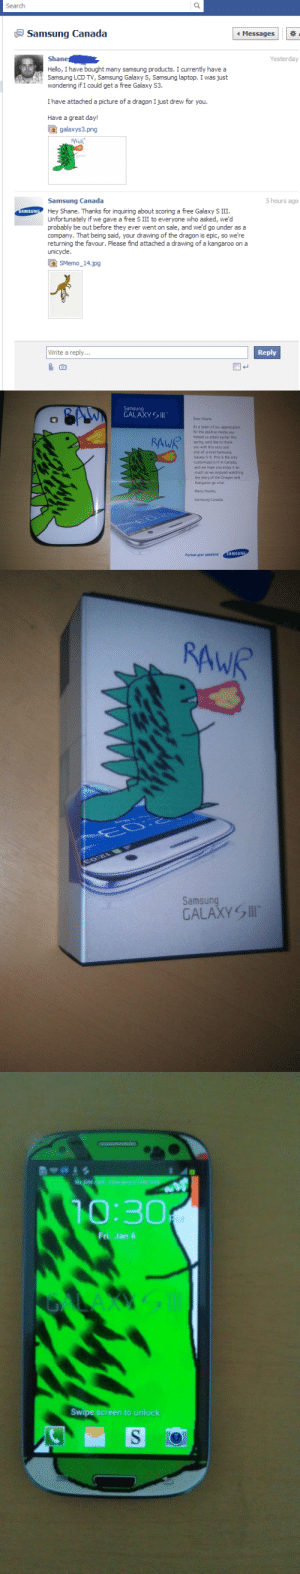 Crazy, Life, and Target: Search  Samsung Canada  Messages  Shan  Yesterday  Samsung LCD TV, Samsung Galaxy S, Samsung laptop. I was just  wondering if I could get a free Galaxy S3.  I have attached a picture of a dragon I just drew for you  Have a great day!  galaxys3.pmg  Samsung Canada  Hey Shane. Thanks for inquiring about scoring a free Galaxy S III.  Unfortunately if we gave a free S III to everyone who asked, we'd  5 hours ago  AMSUN  returning the favour. Please find attached a drawing of a kangaroo on a  ric yelk  SMemo-14.jpg  Write a reply...  Reply   Samsun  ช่เ  Dear Shane  As a token of our appreciation  for the positive media you  helped us attain earlier this  spring, we'd like to thank  you with this very cool  one-of-a-kind Samsung  Galaxy S IlI. This is the only  customized S IIl in Canada,  and we hope you enjoy it as  much as we enjoyed watching  the story of the Dragon and  Kangaroo go viral.  Many thanks  Samsung Canada.  AMSUN  Pursue your passions   RAWK  Samsu  GALAXY SII   10:30  Fri. Jan 6  Swipe screen to unlock now-theres-a-spoiler-for-you:  crustified:  crazo3077:  attractdistract:  waddlebuff:  poeticallygreen:  This is badass. Way to go Samsung, keeping customers for life.  Good on you Samsung. That's real marketing.  awesome.  I wonder if Shane wishes he drew something different.  If he does, he's crazy.  Canada.